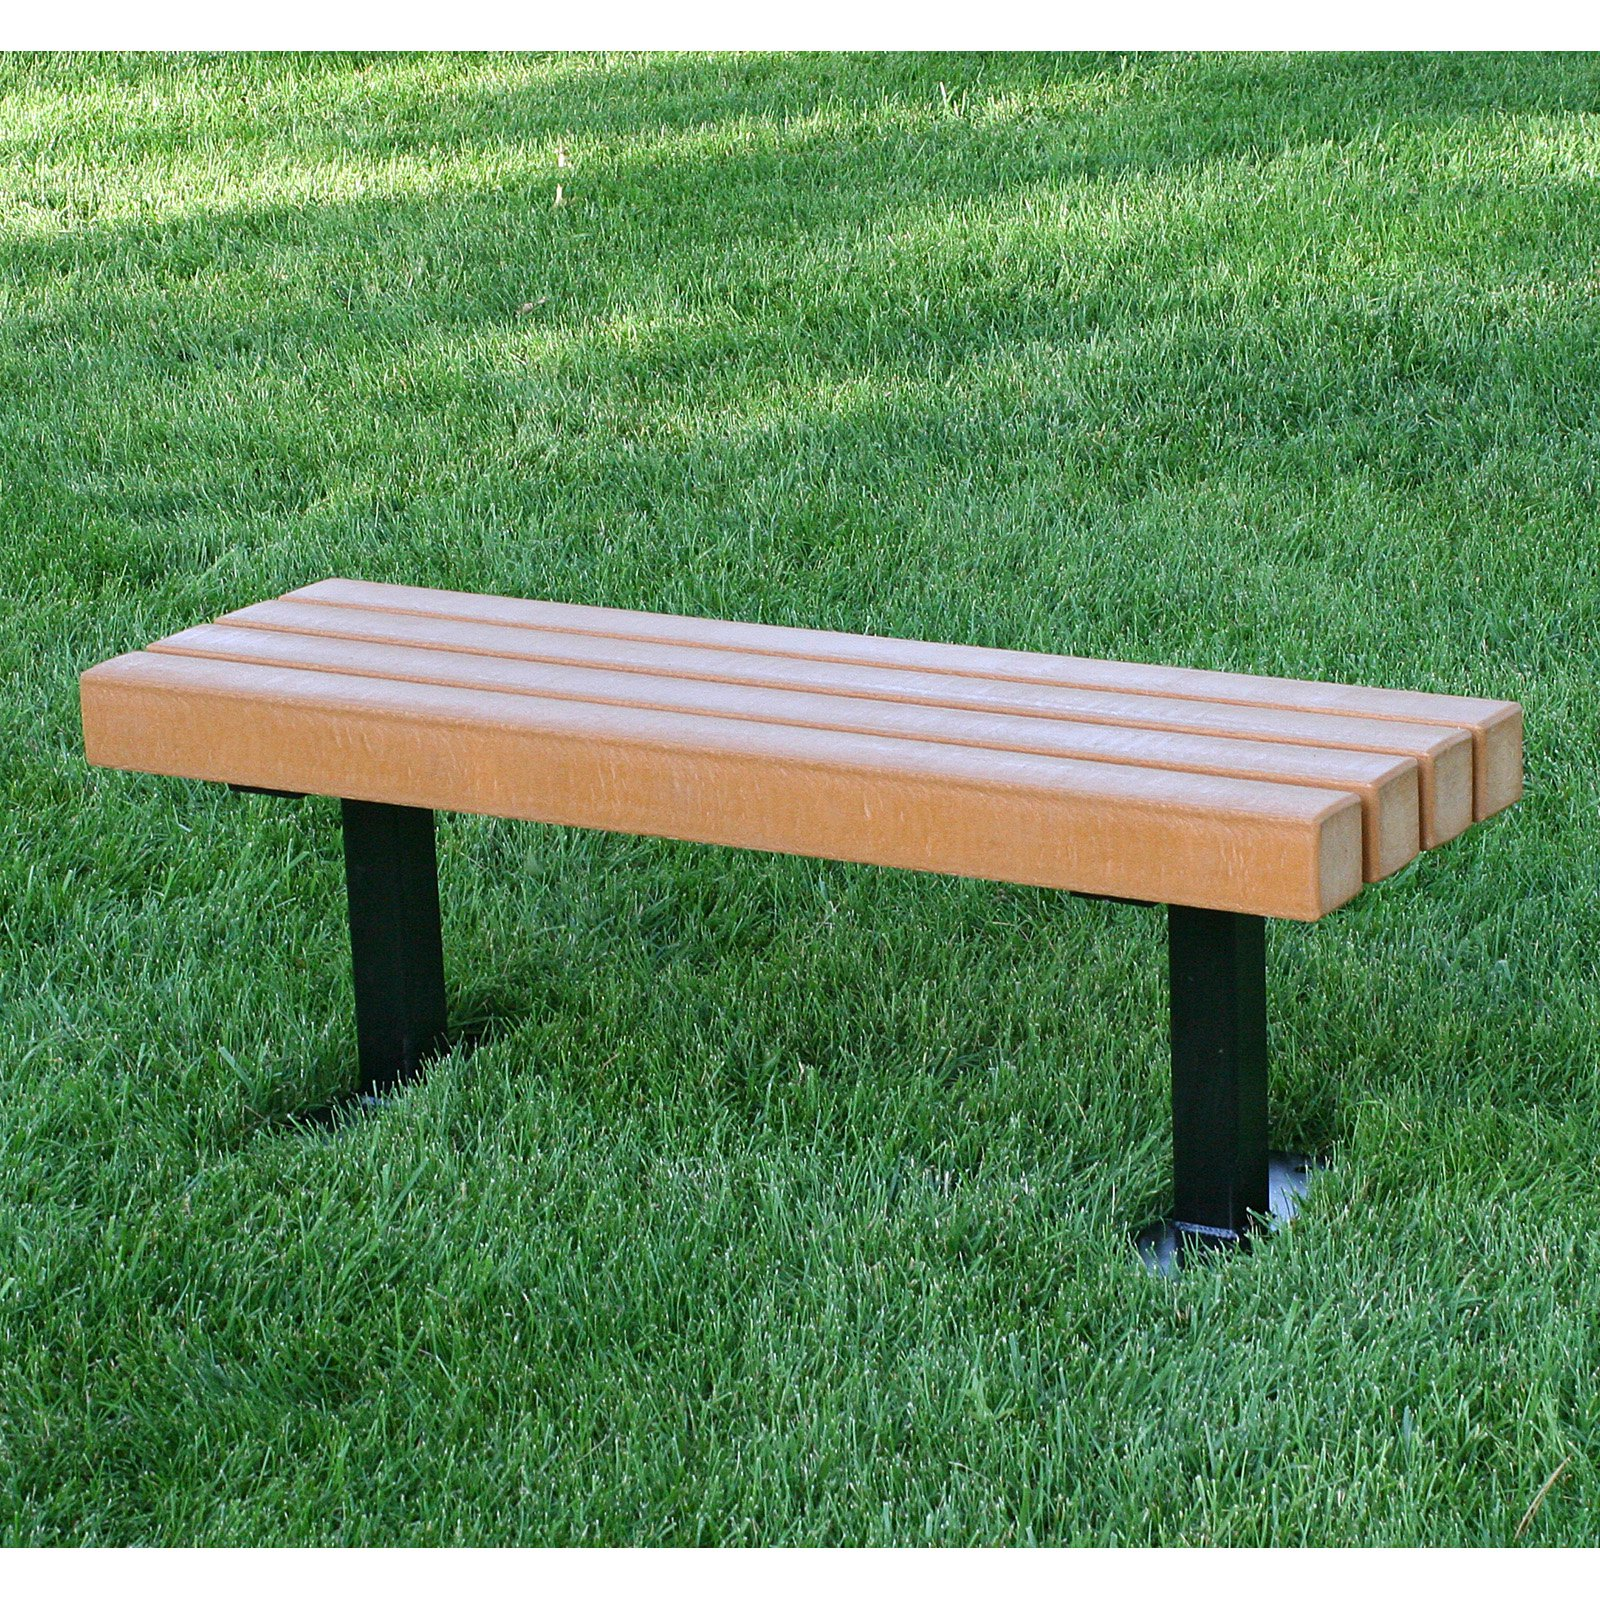 Jayhawk Plastics Trailside Recycled Plastic Commercial Backless Bench